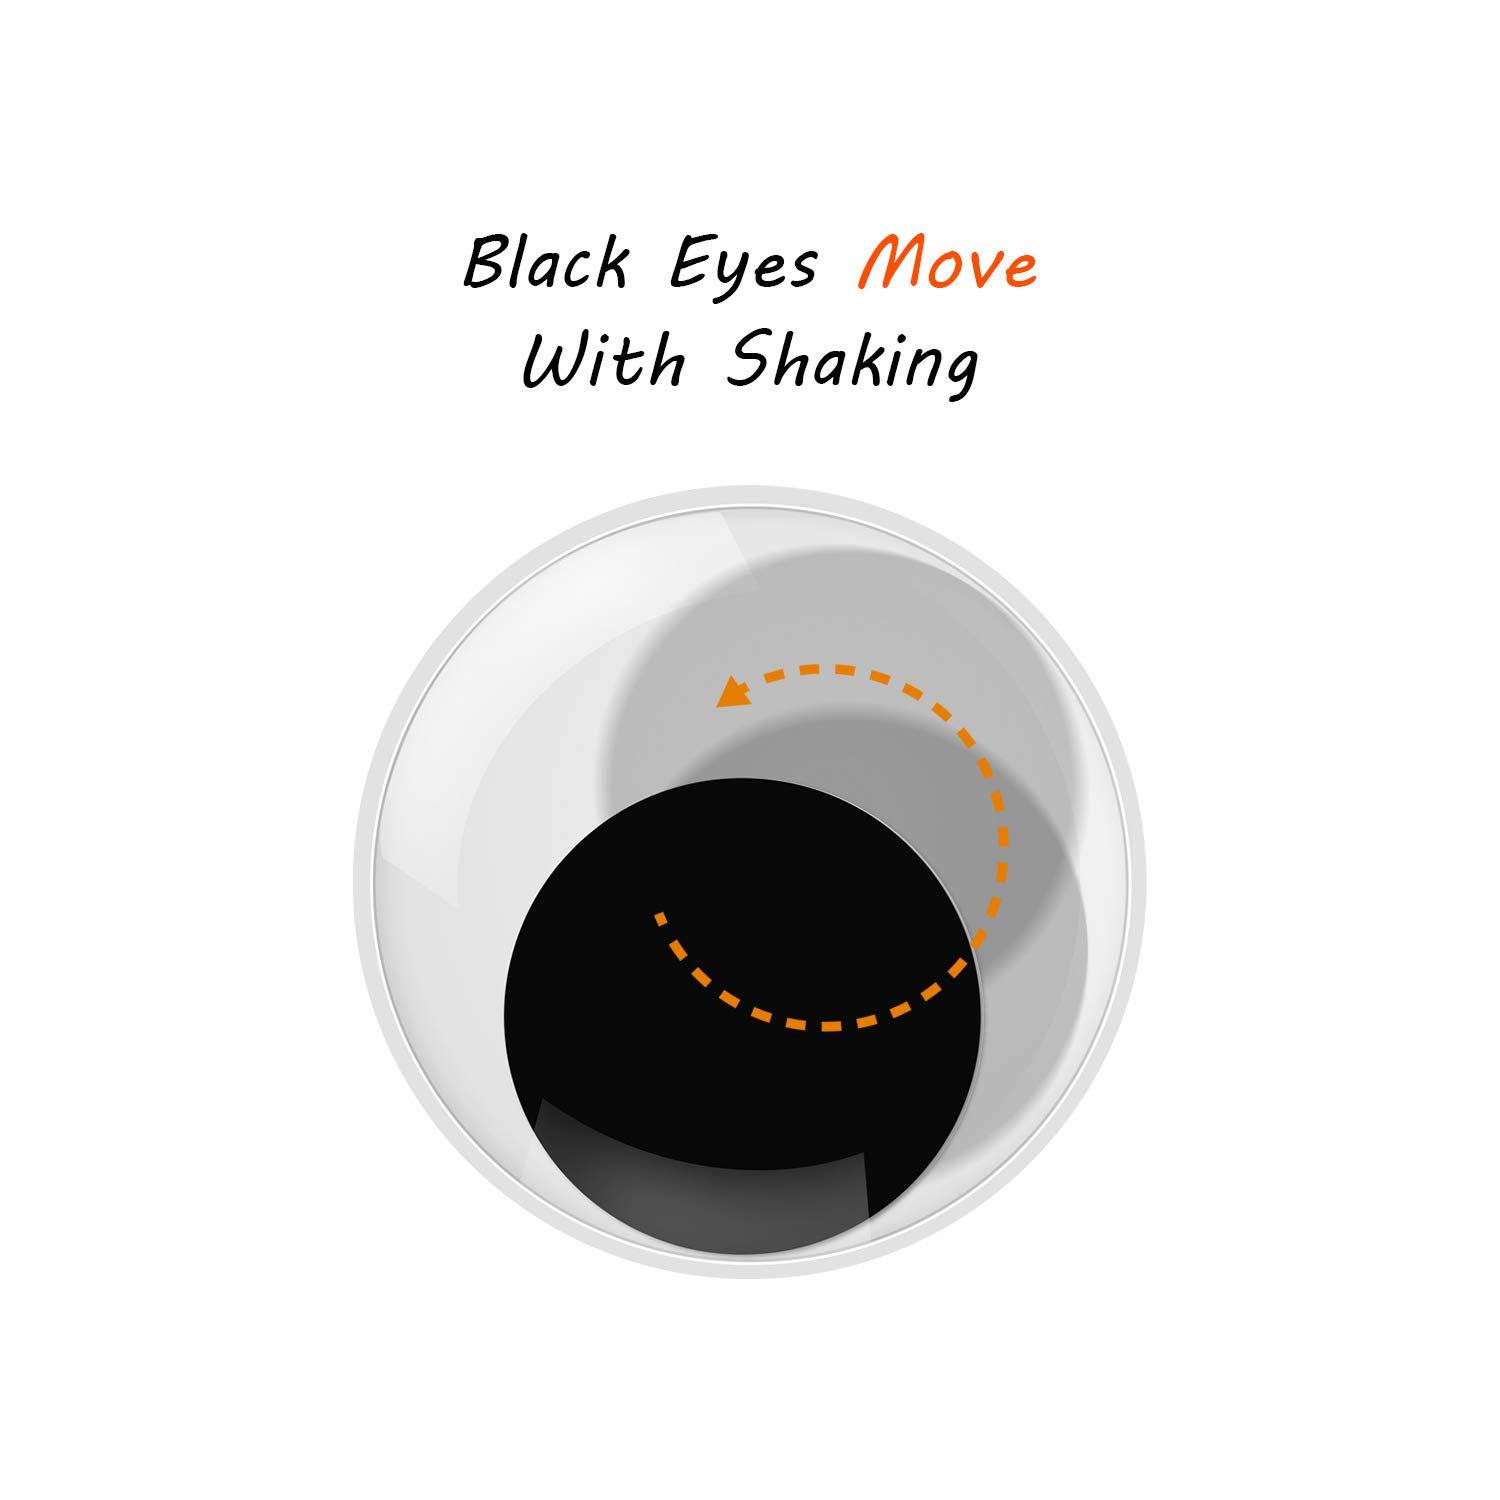 6 Pieces Giant Googly Eyes Large Giant Wiggle Googly Eyes Stickers Black Round Googly Eyes with Self Adhesive for Craftwork Toy Accessories DIY Scrapbooking Crafts Decorations 2 3 4 Inch